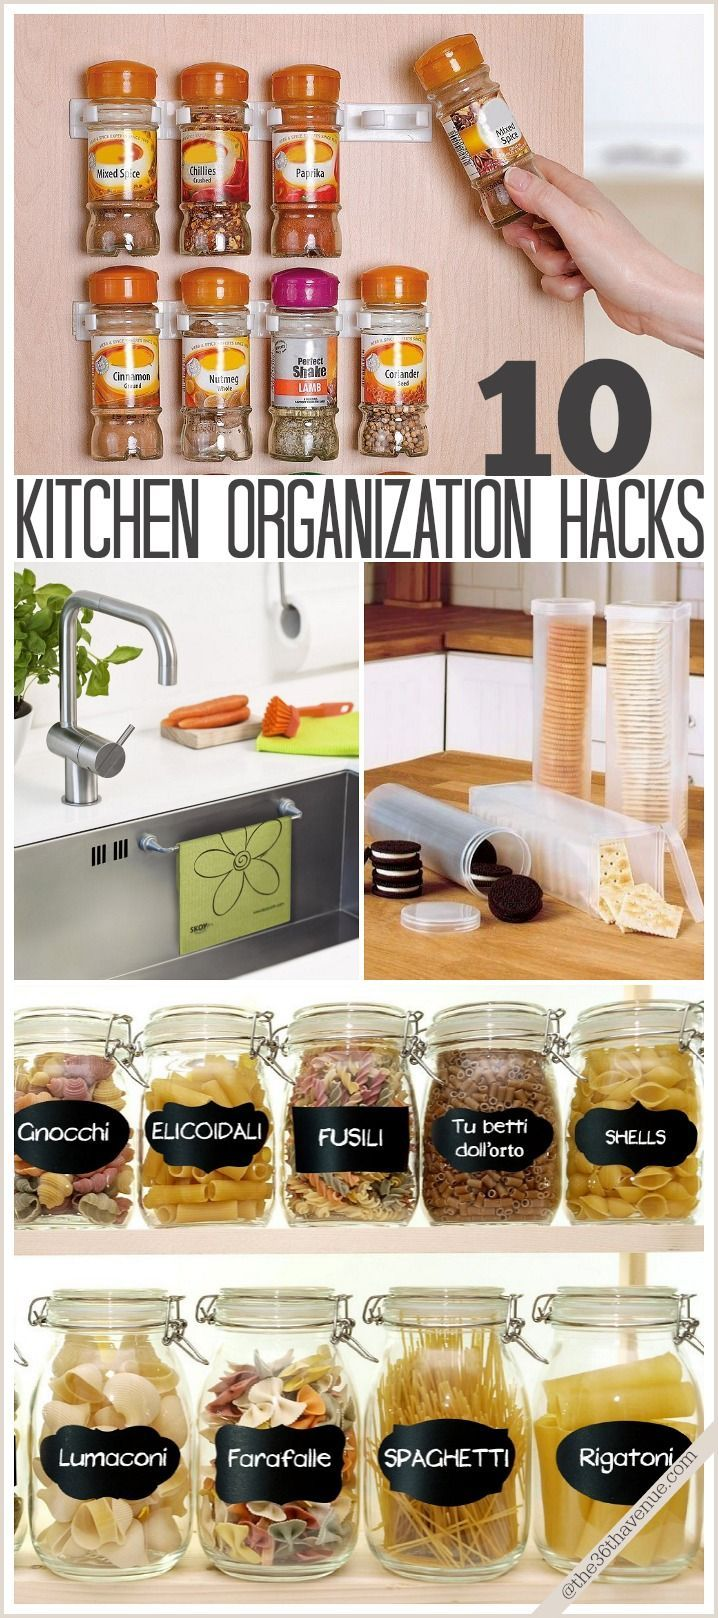 These 10 simple kitchen-organizing hacks use everything from wall clips for spices to magnetic dish towel racks, and are a great way to save space and hassle in kitchens of any size.